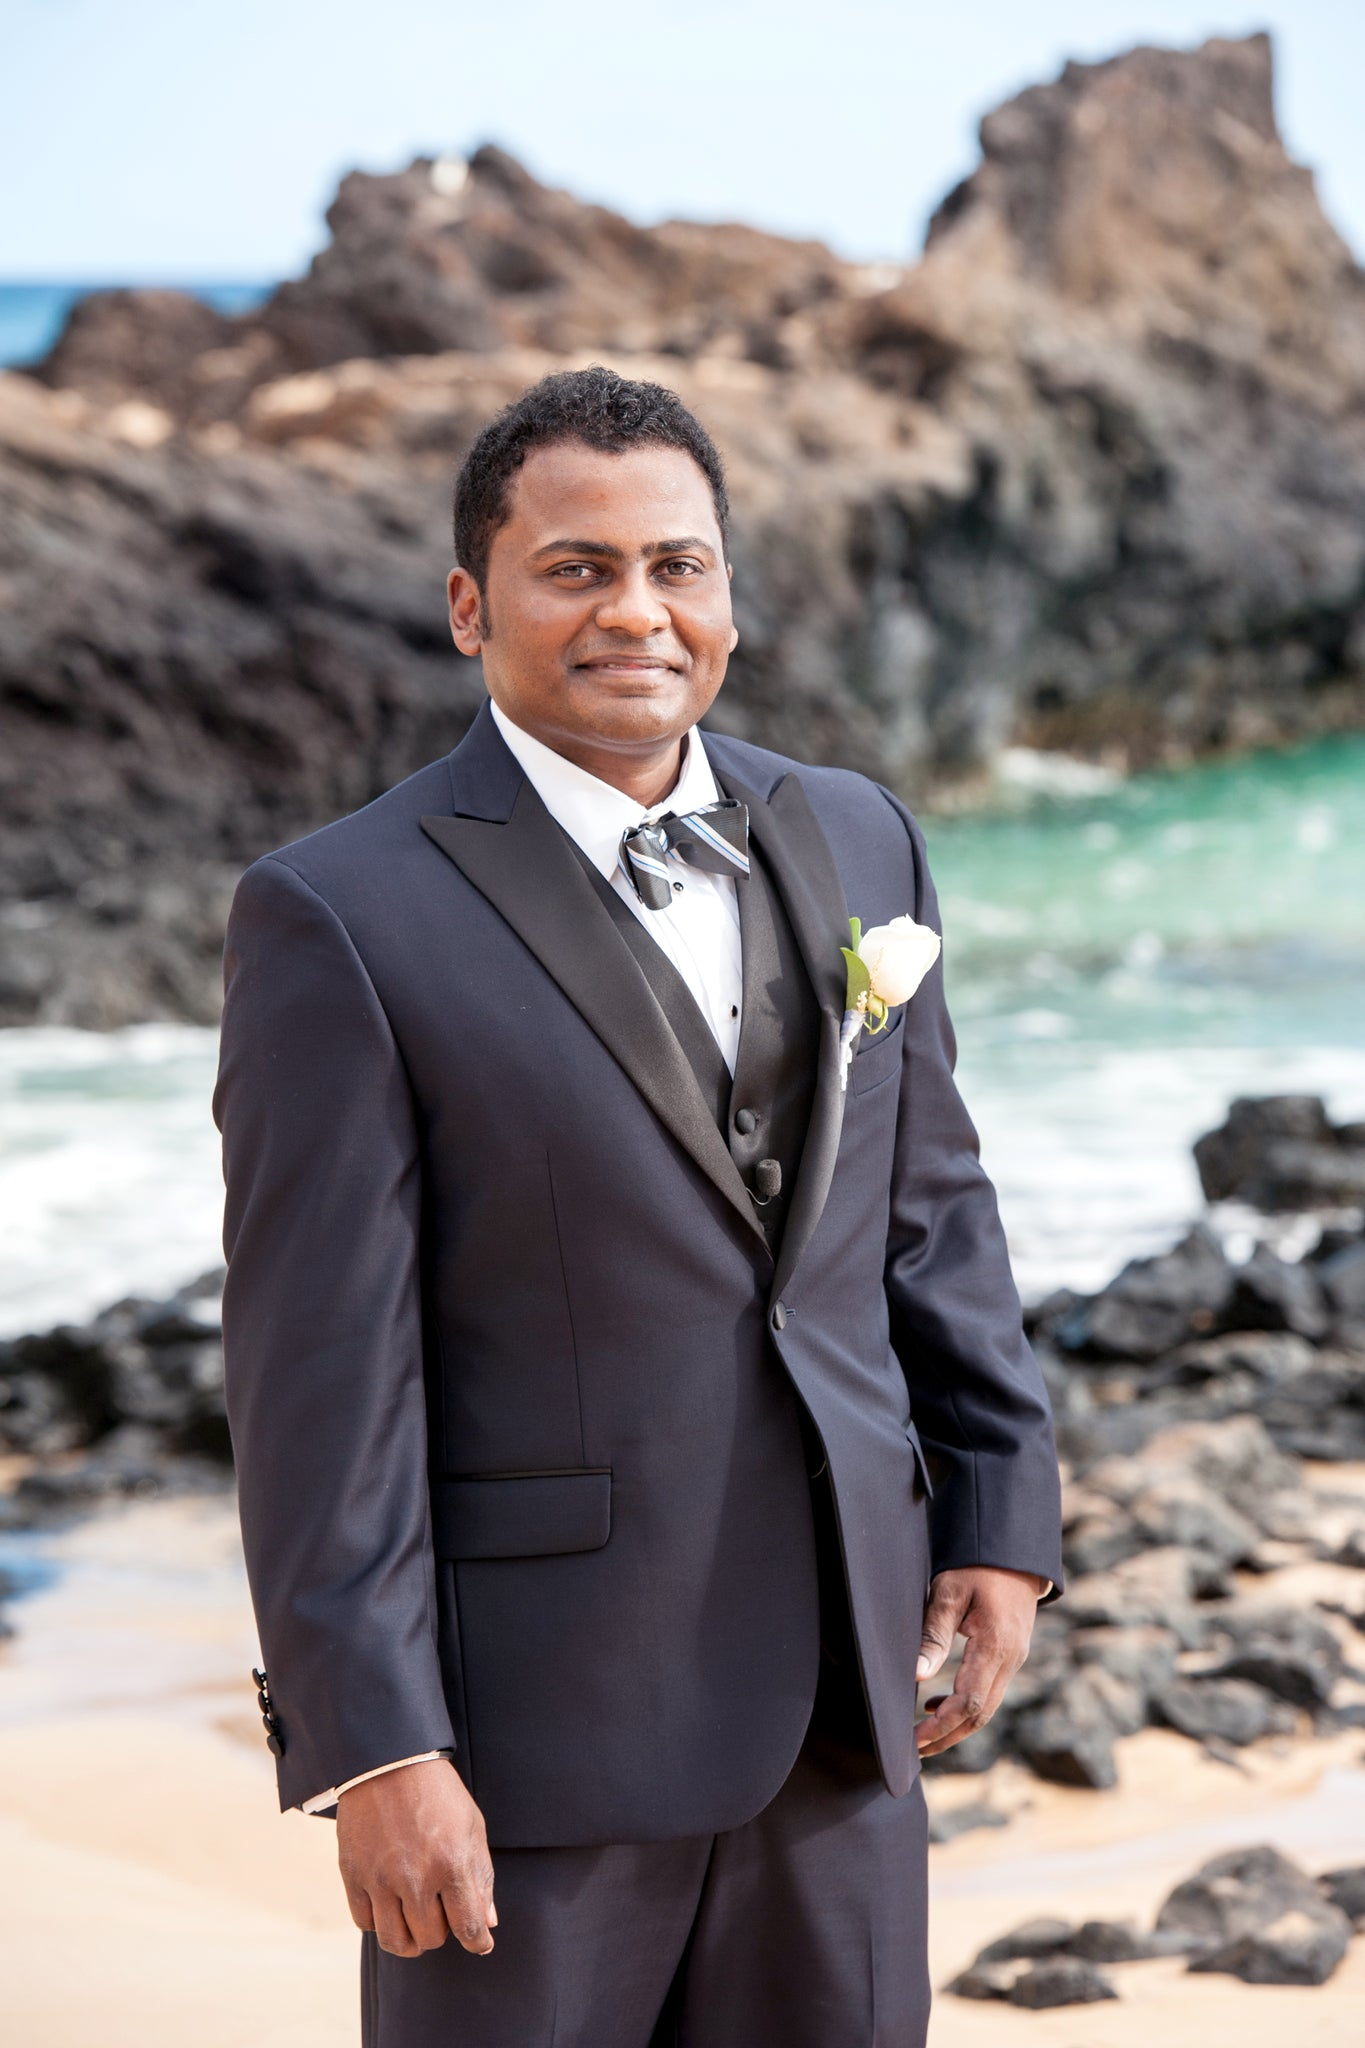 The Groom waits for his Bride on the Beach in Maui, Hawaii